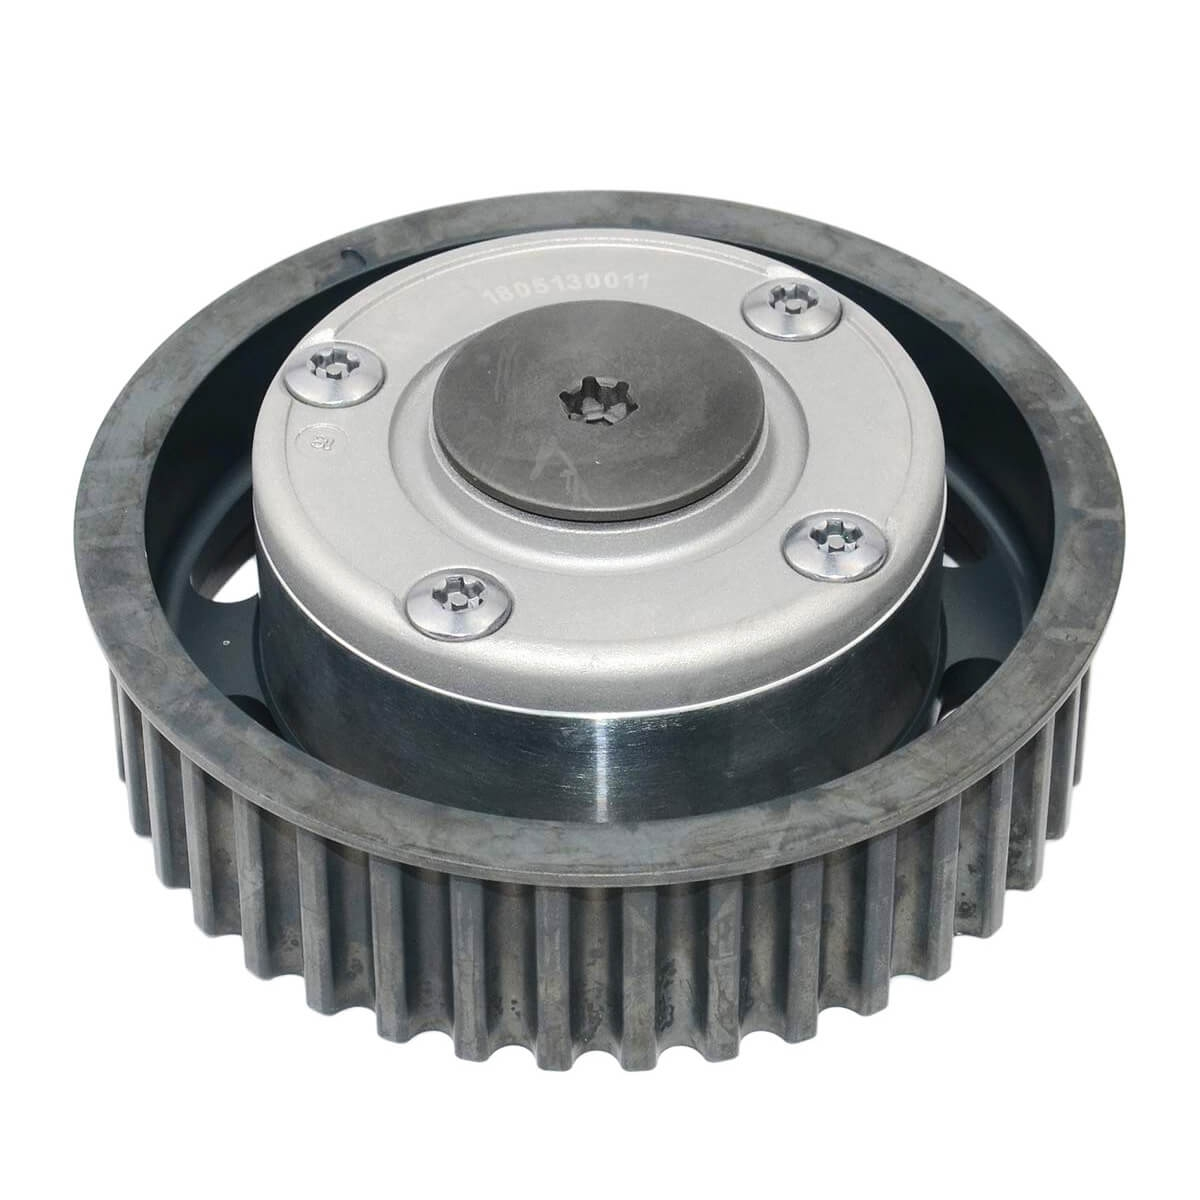 FORD ESCORT MK5 Cam Dephaser Pulley